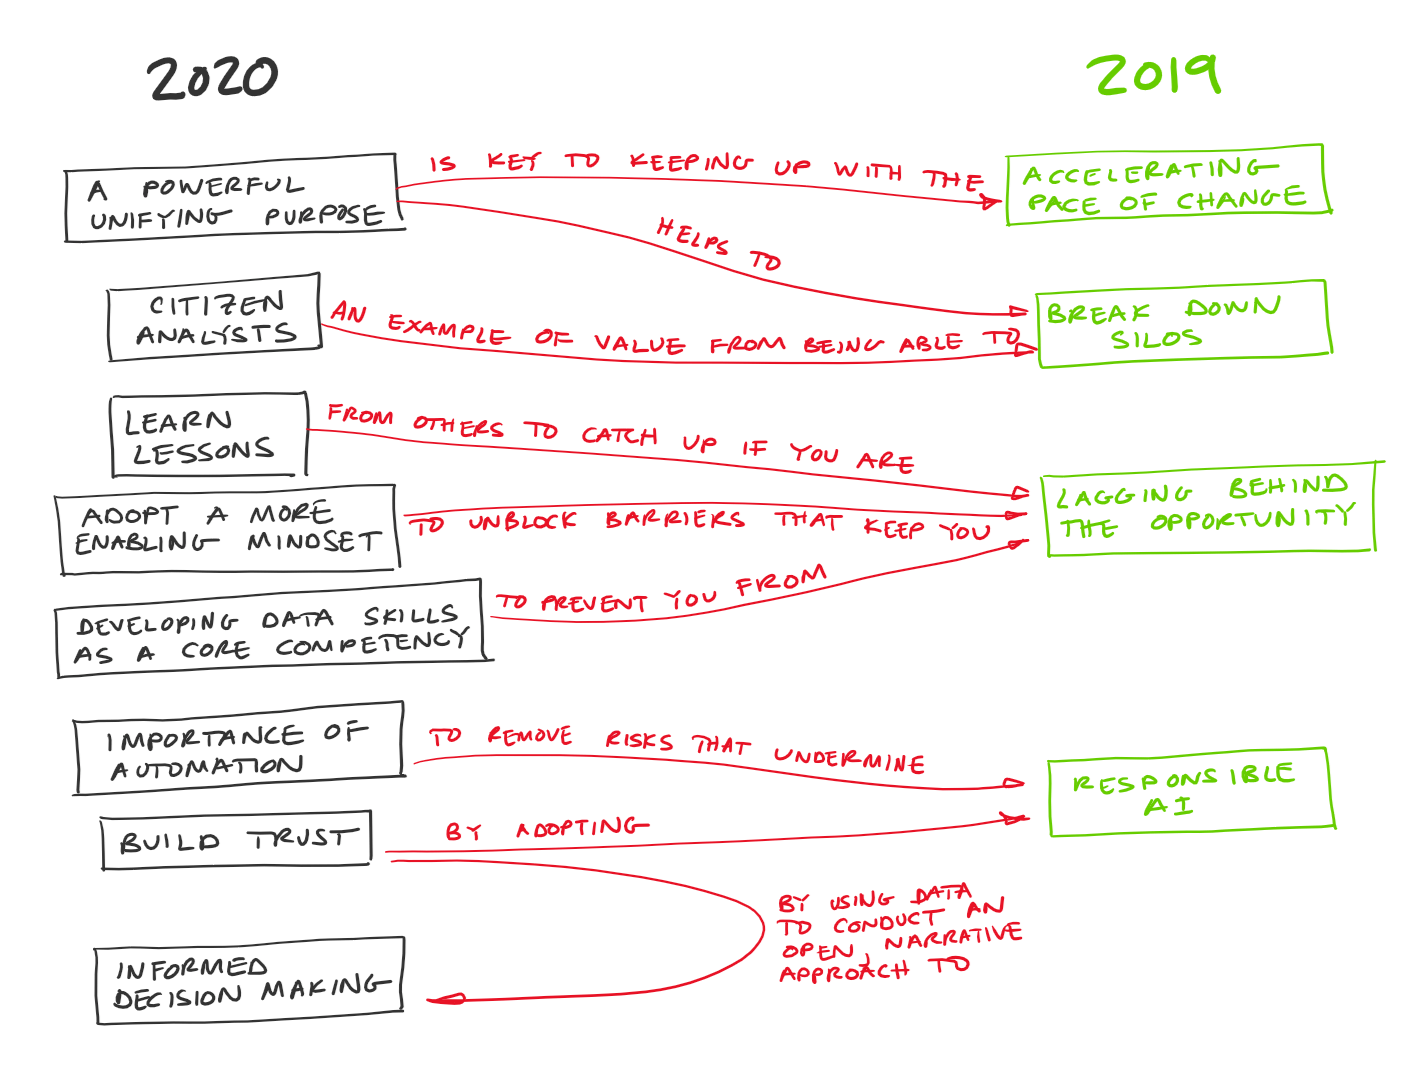 Mind of how themes from 2019 and 2020 are related.